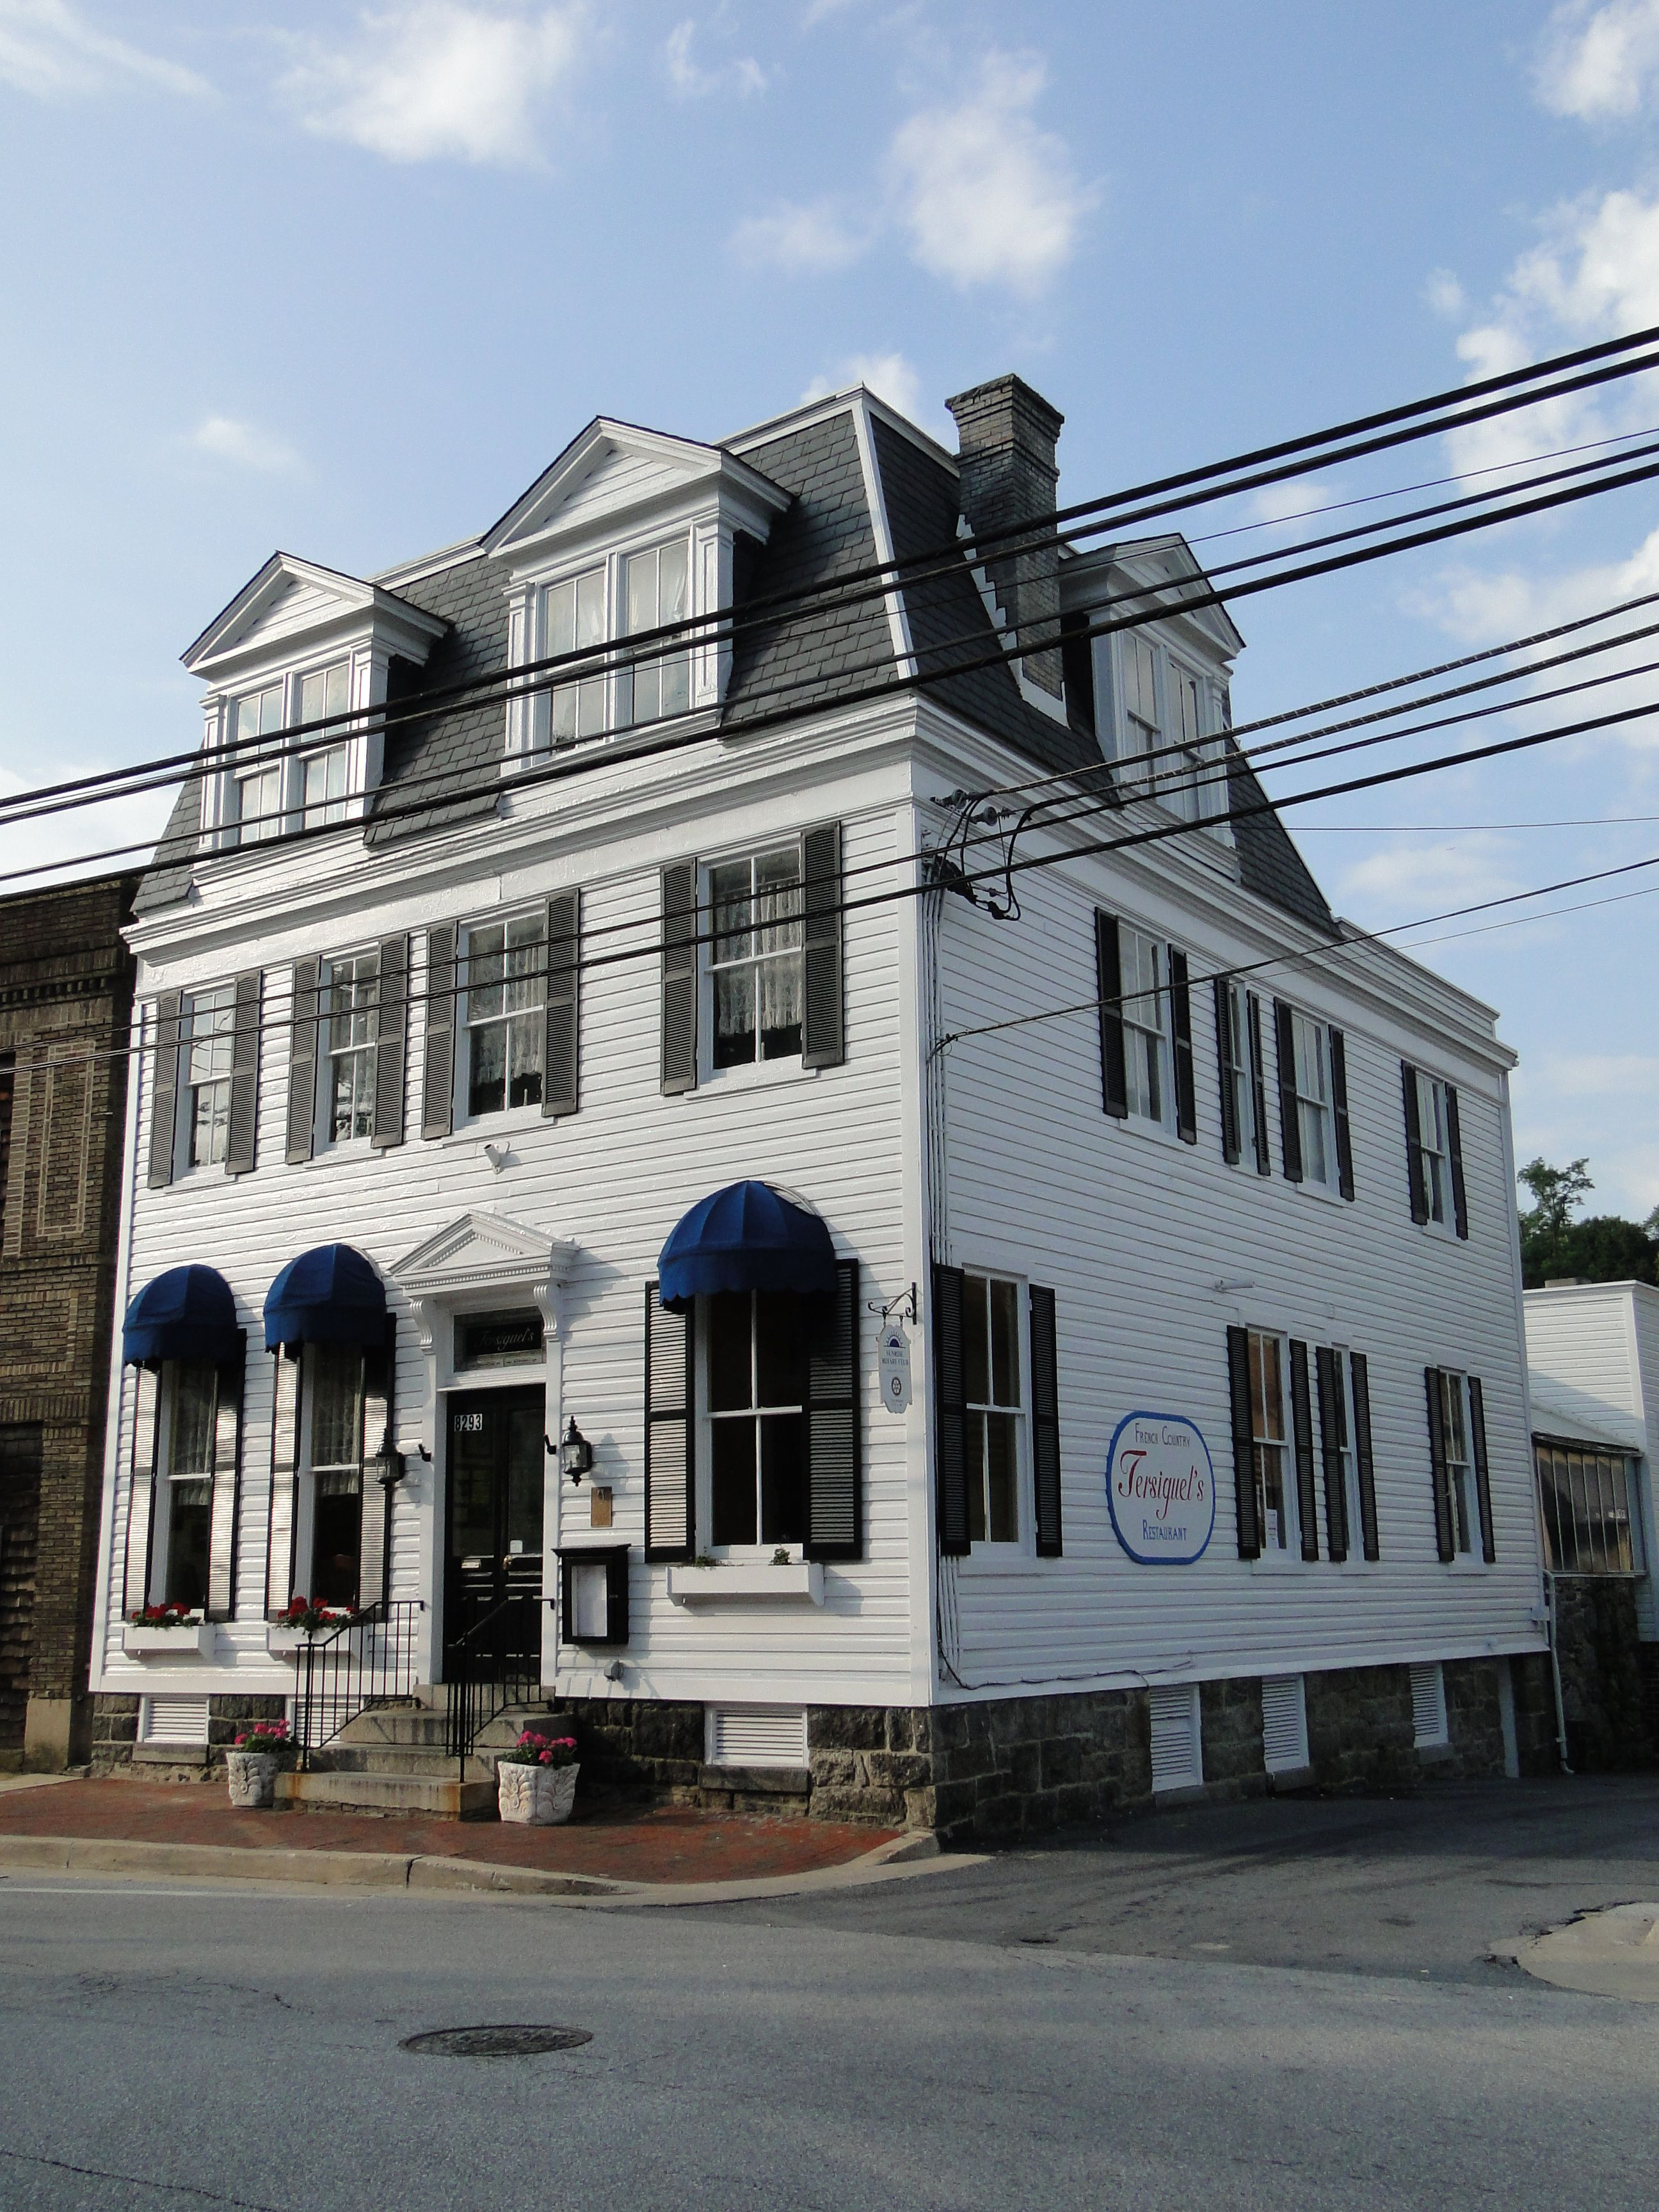 Tersiguels Restaurant In Ellicott City Maryland French Restaurants Old Buildings Washington